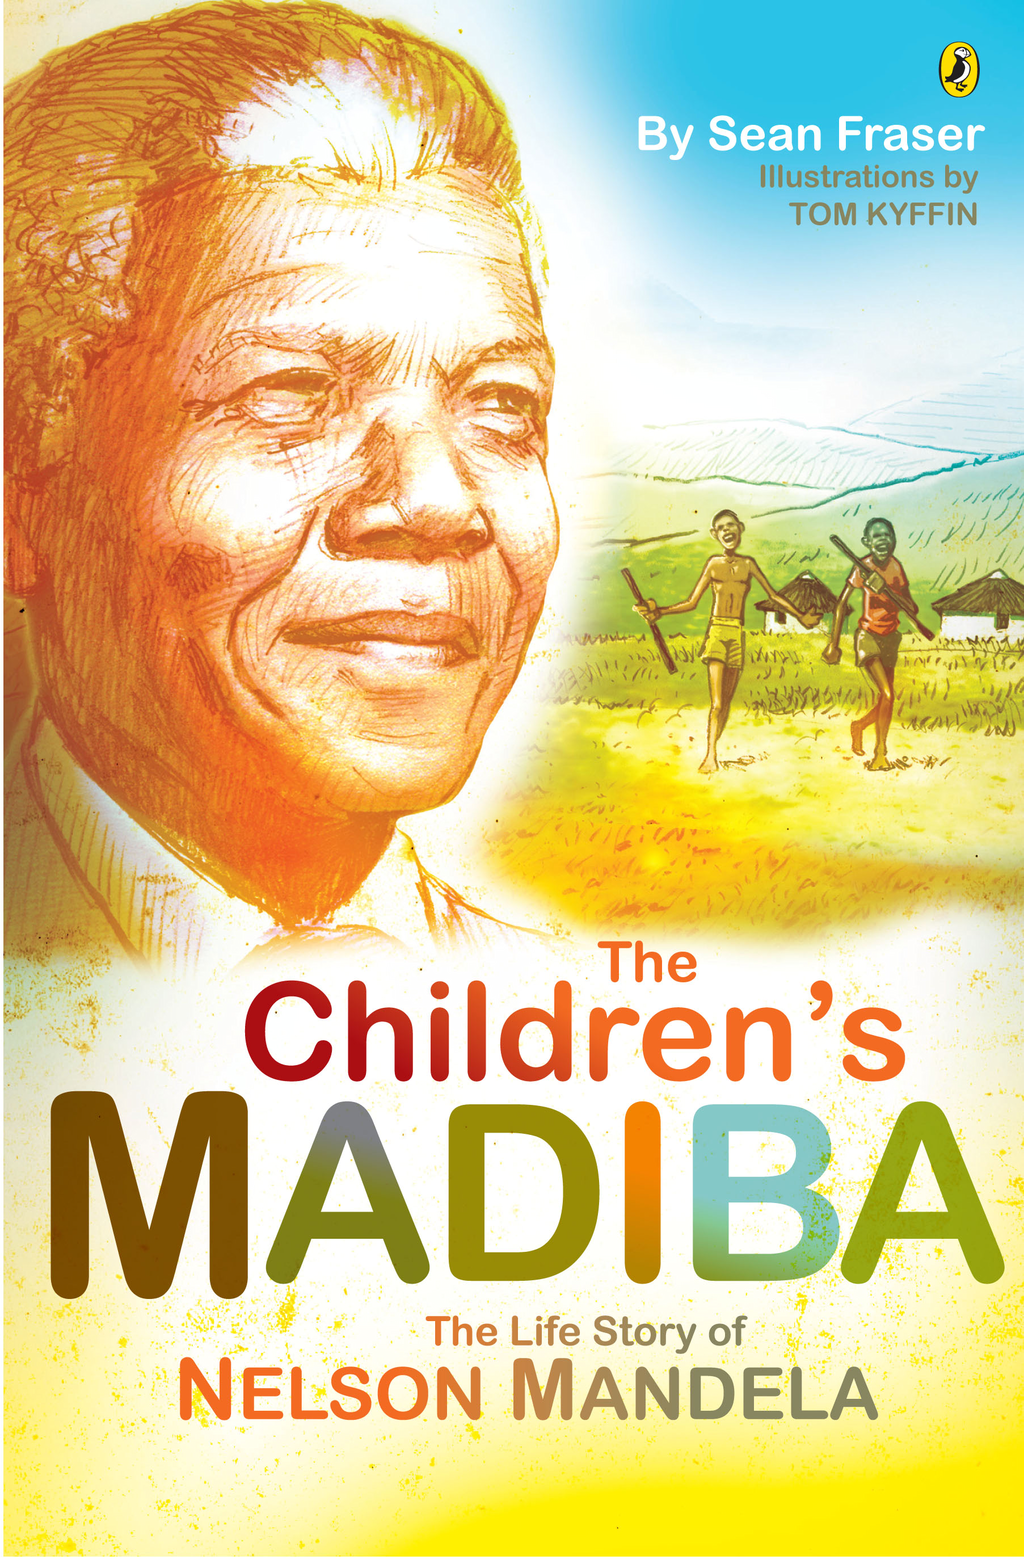 The Children's Madiba